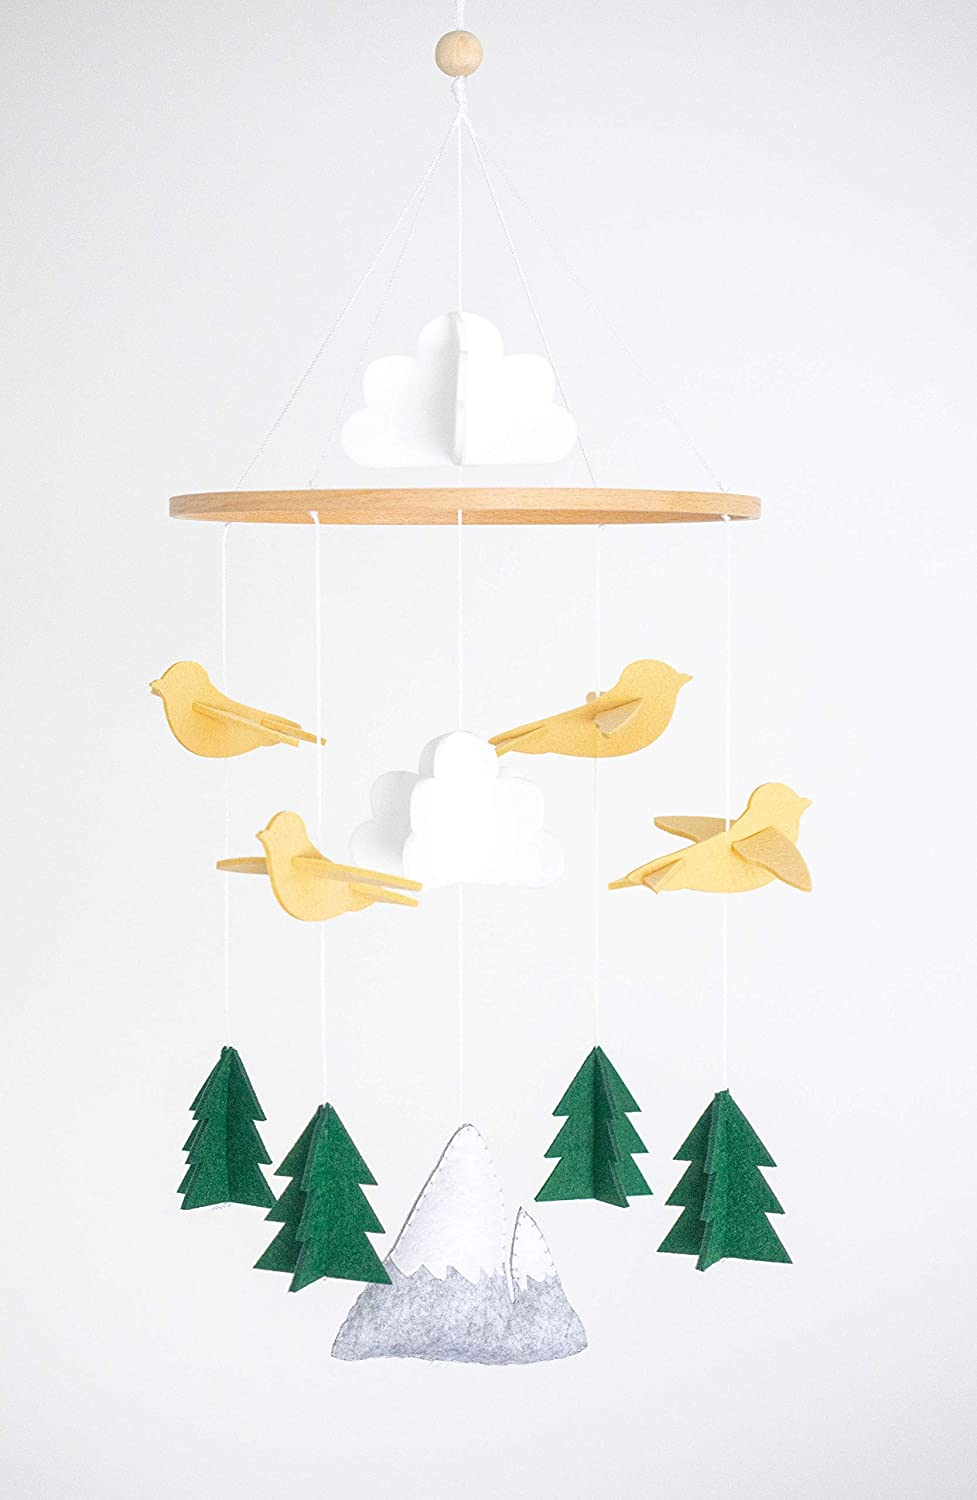 Baby Crib Mobile by Cheeky Owl - Beige Woodland Forest Mountain Mobile for Nursery Decor and Ceiling Decoration, Baby Mobile for Crib boy and Girl Gender Neutral Baby Nursery Decorations Mobile Crib